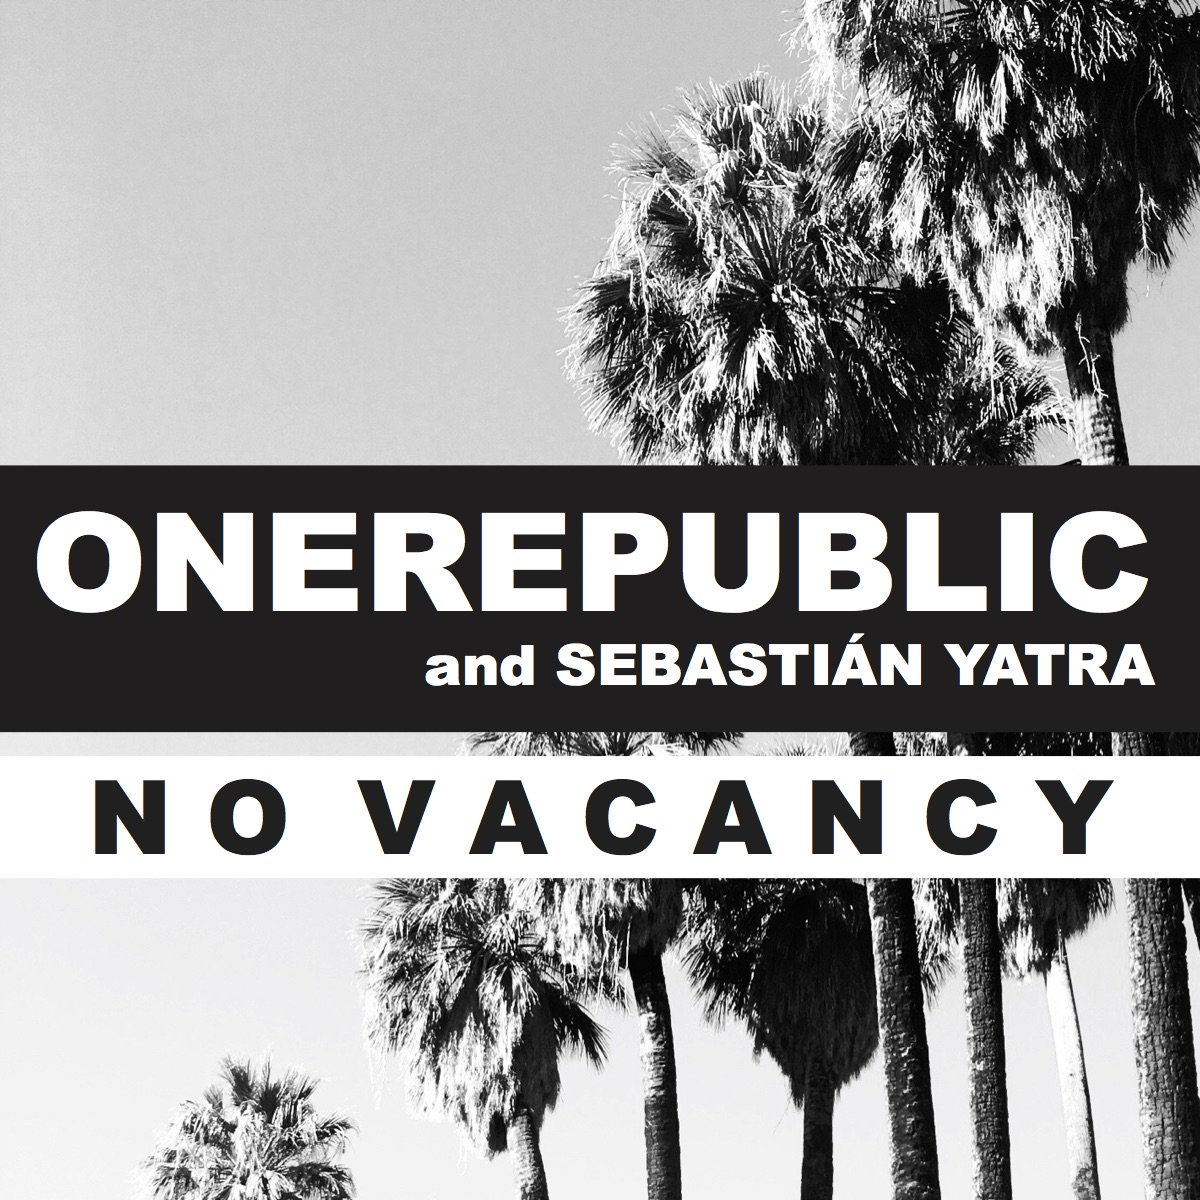 .@OneRepublic shares a new version of their #NoVacancy track with @SebastianYatra https://t.co/3GgIzrozo7 https://t.co/EE145Kr07k